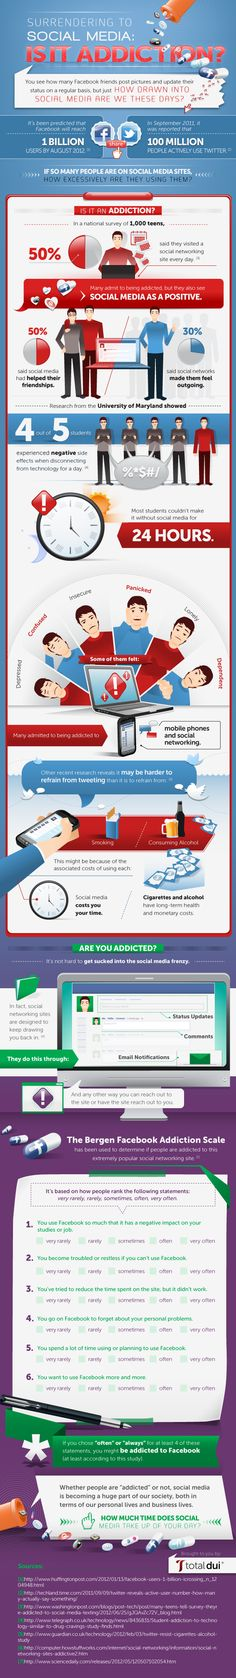 Surrendering to Social Media: Is it addiction? #infographic